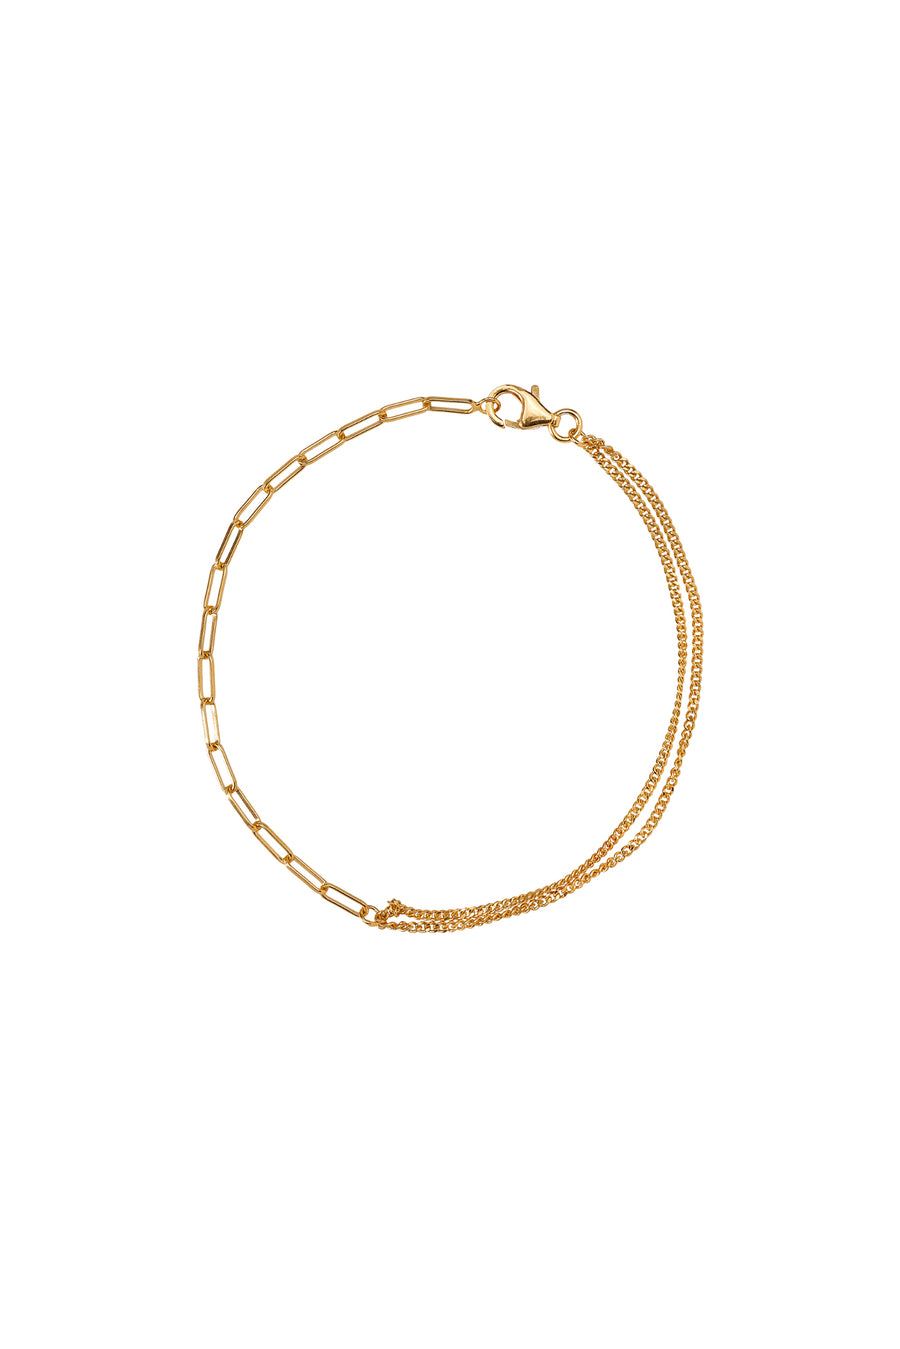 Xzota | Armbanden | Double chain | Gold plated